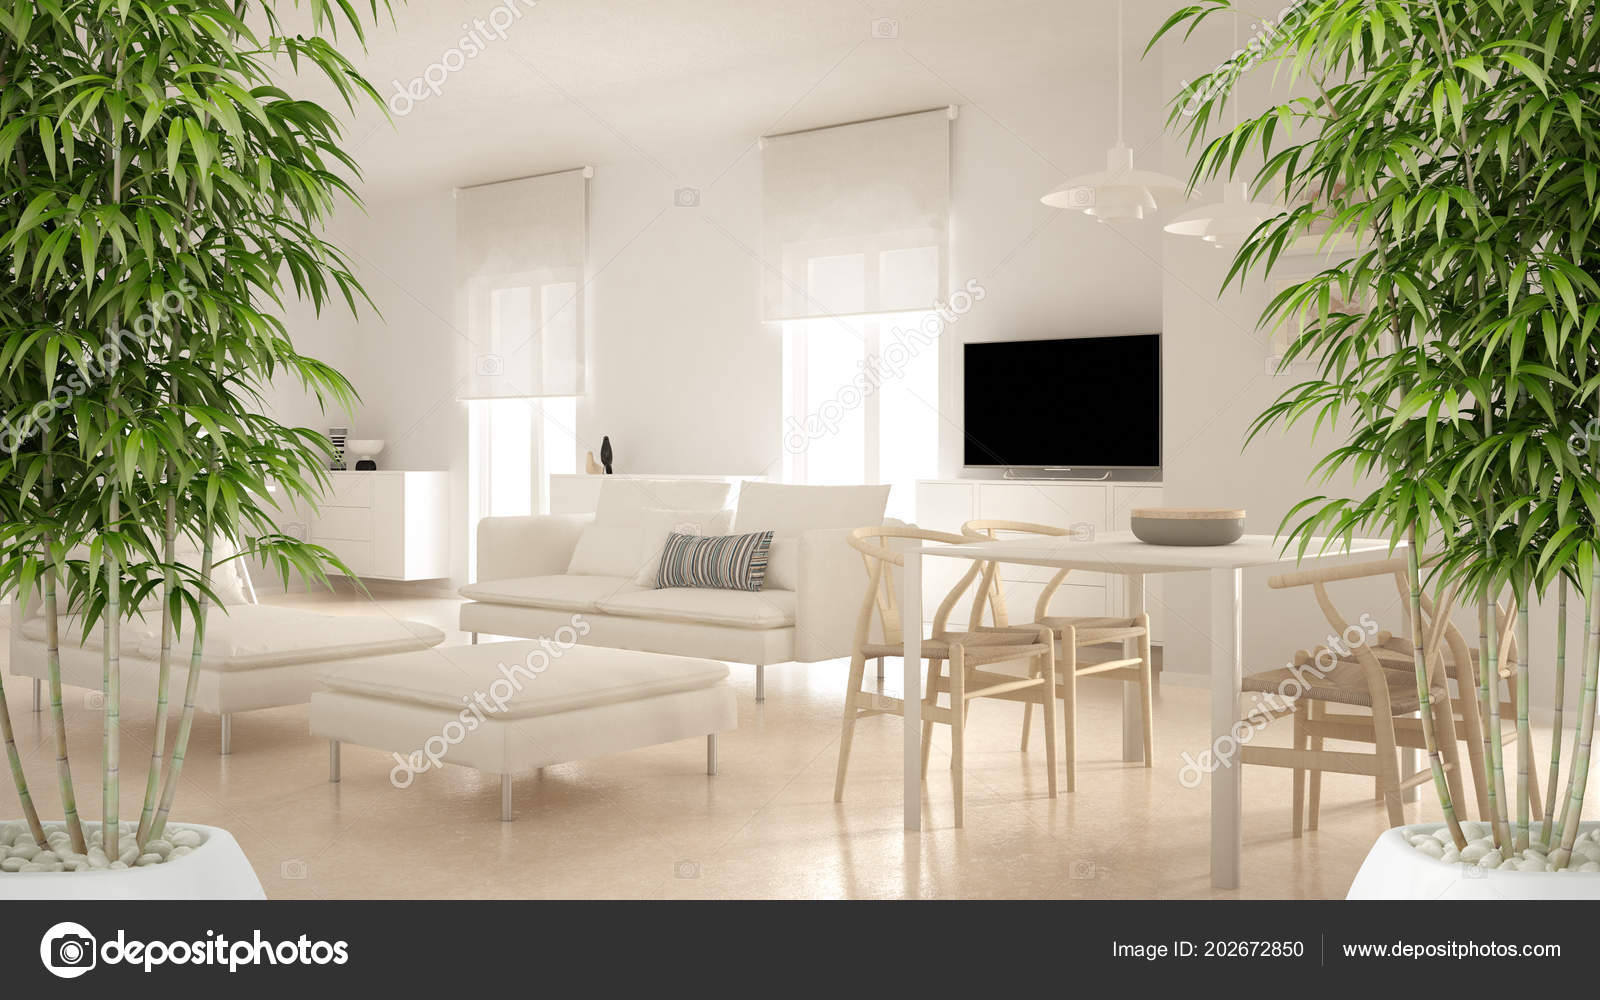 Zen Interior Potted Bamboo Plant Natural Interior Design Concept